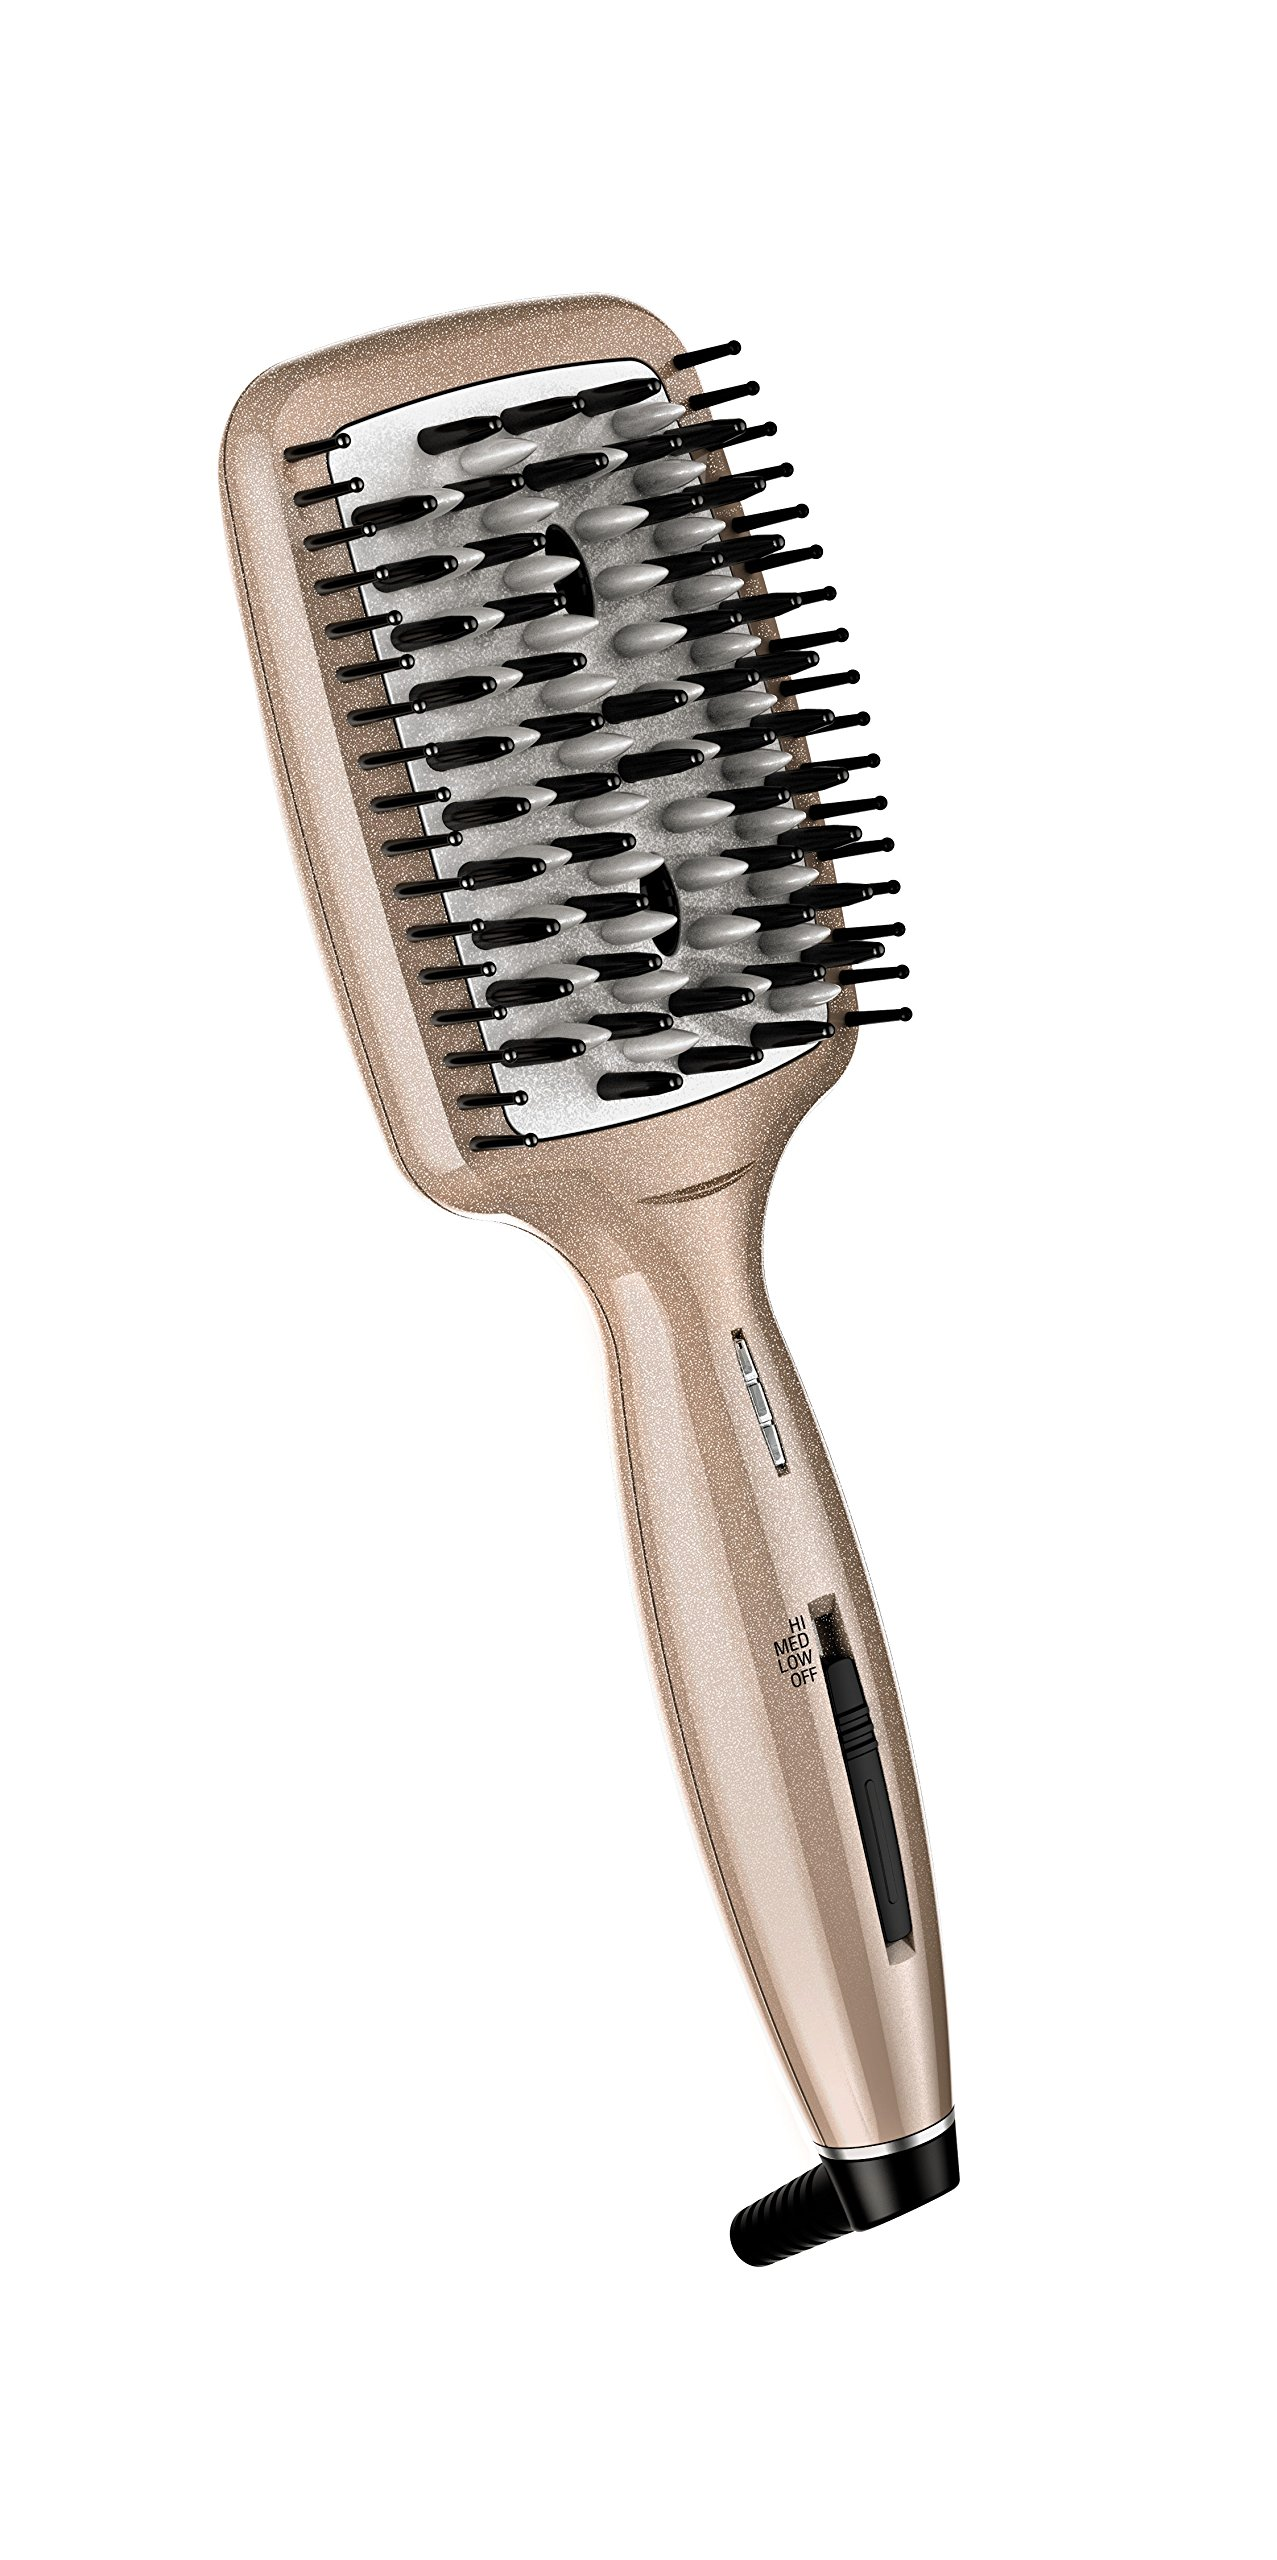 INFINITIPRO BY CONAIR Diamond-Infused Ceramic Smoothing Hot Brush/Straightening Brush; Rose Gold - 81SZAiZ9w8L - INFINITIPRO BY CONAIR Diamond-Infused Ceramic Smoothing Hot Brush/Straightening Brush; Rose Gold